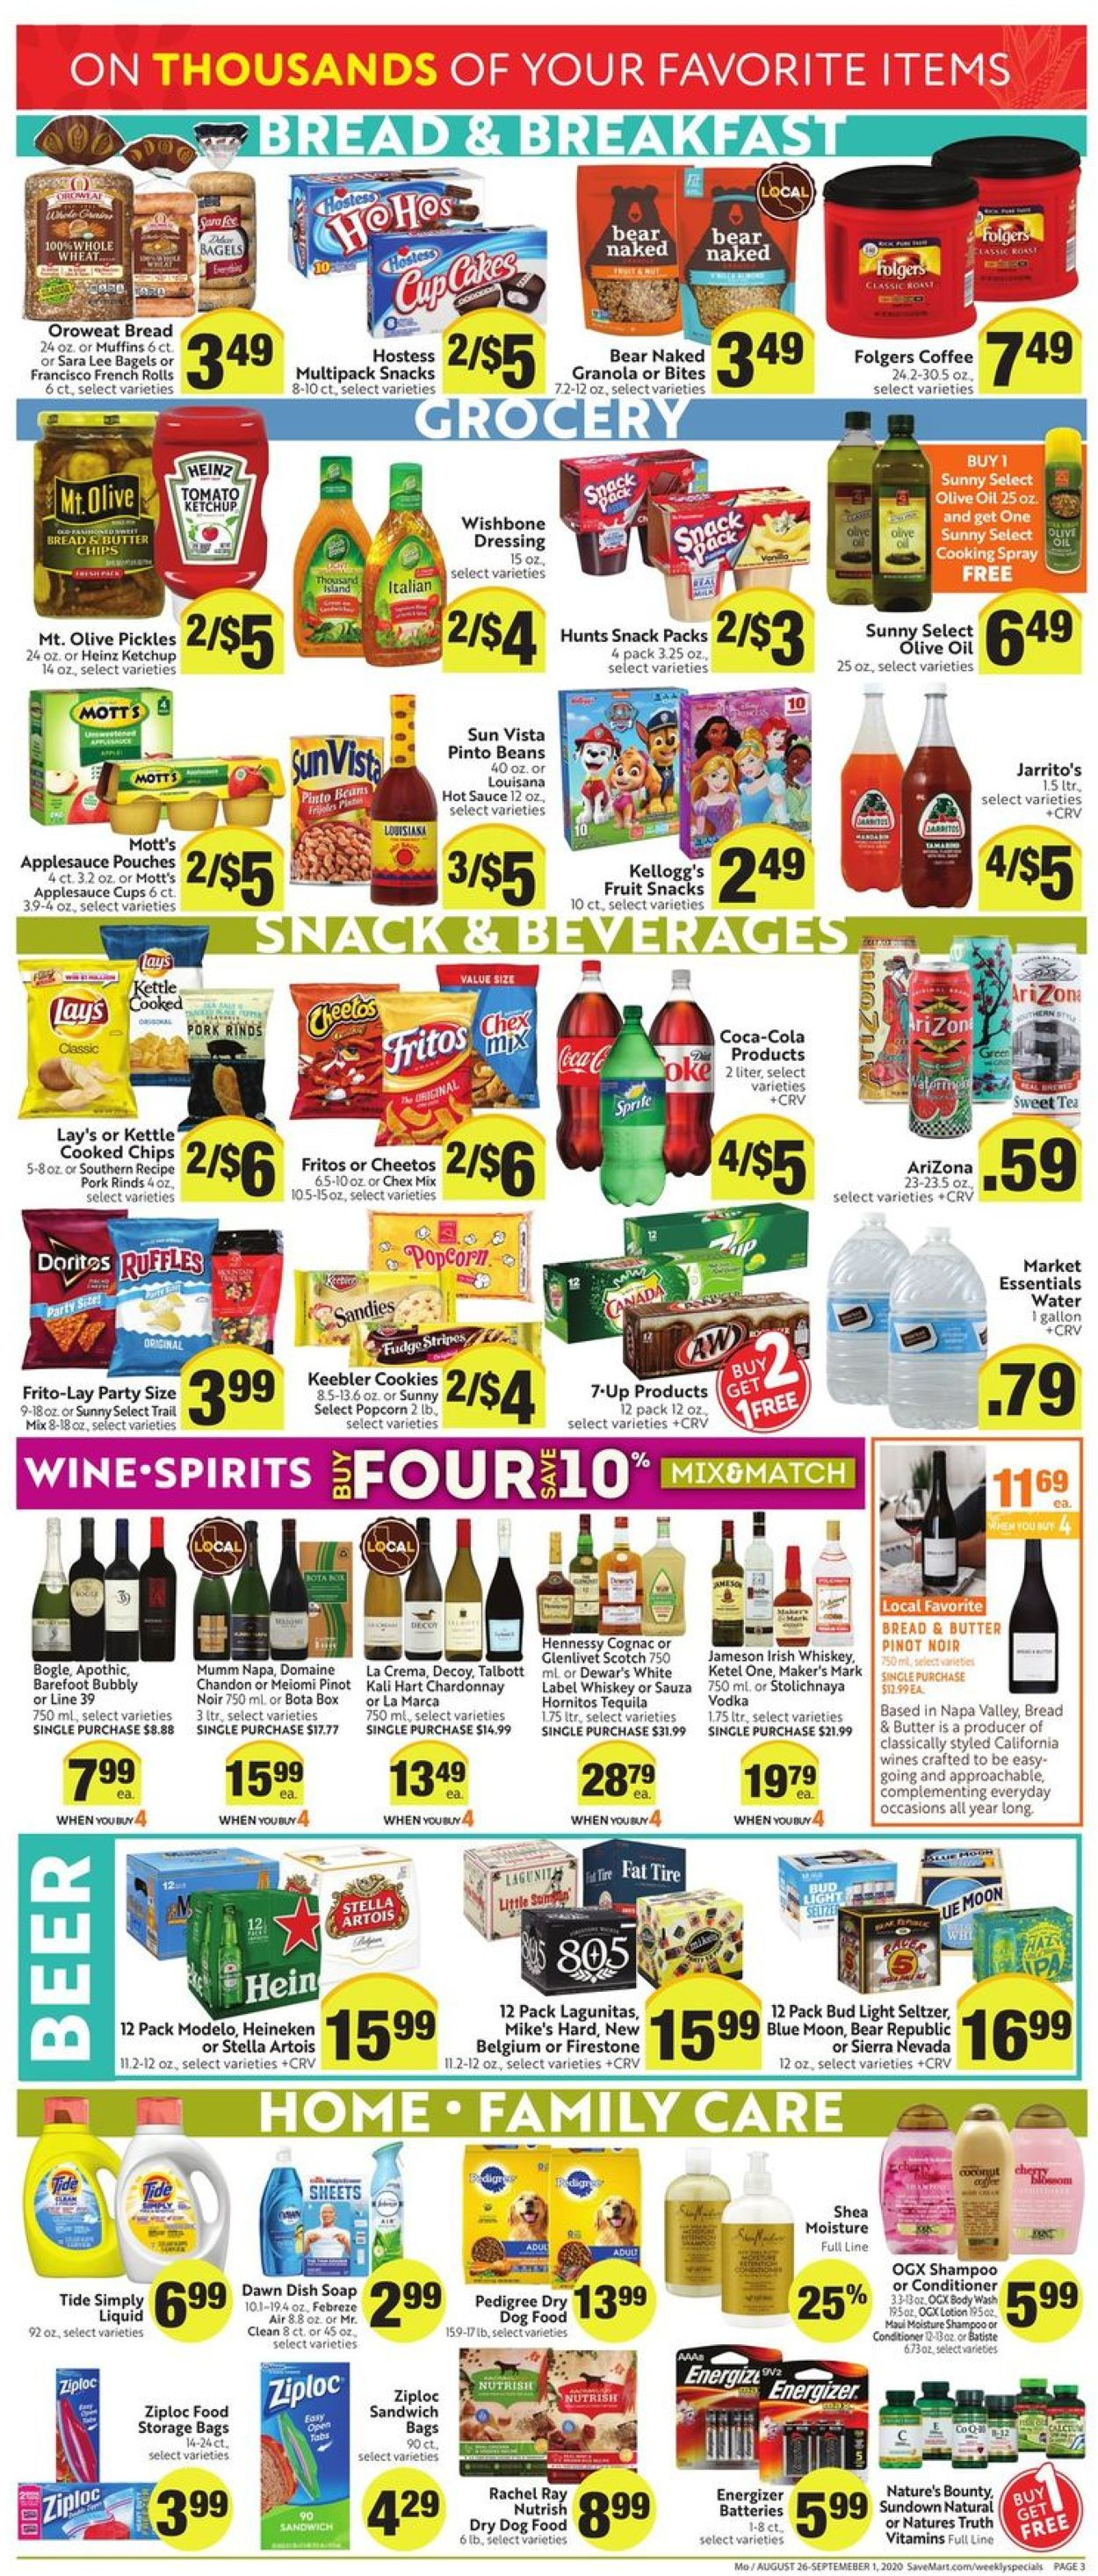 Save Mart Christmas Trees 2020 Save Mart Current weekly ad 08/26   09/01/2020 [3]   frequent ads.com